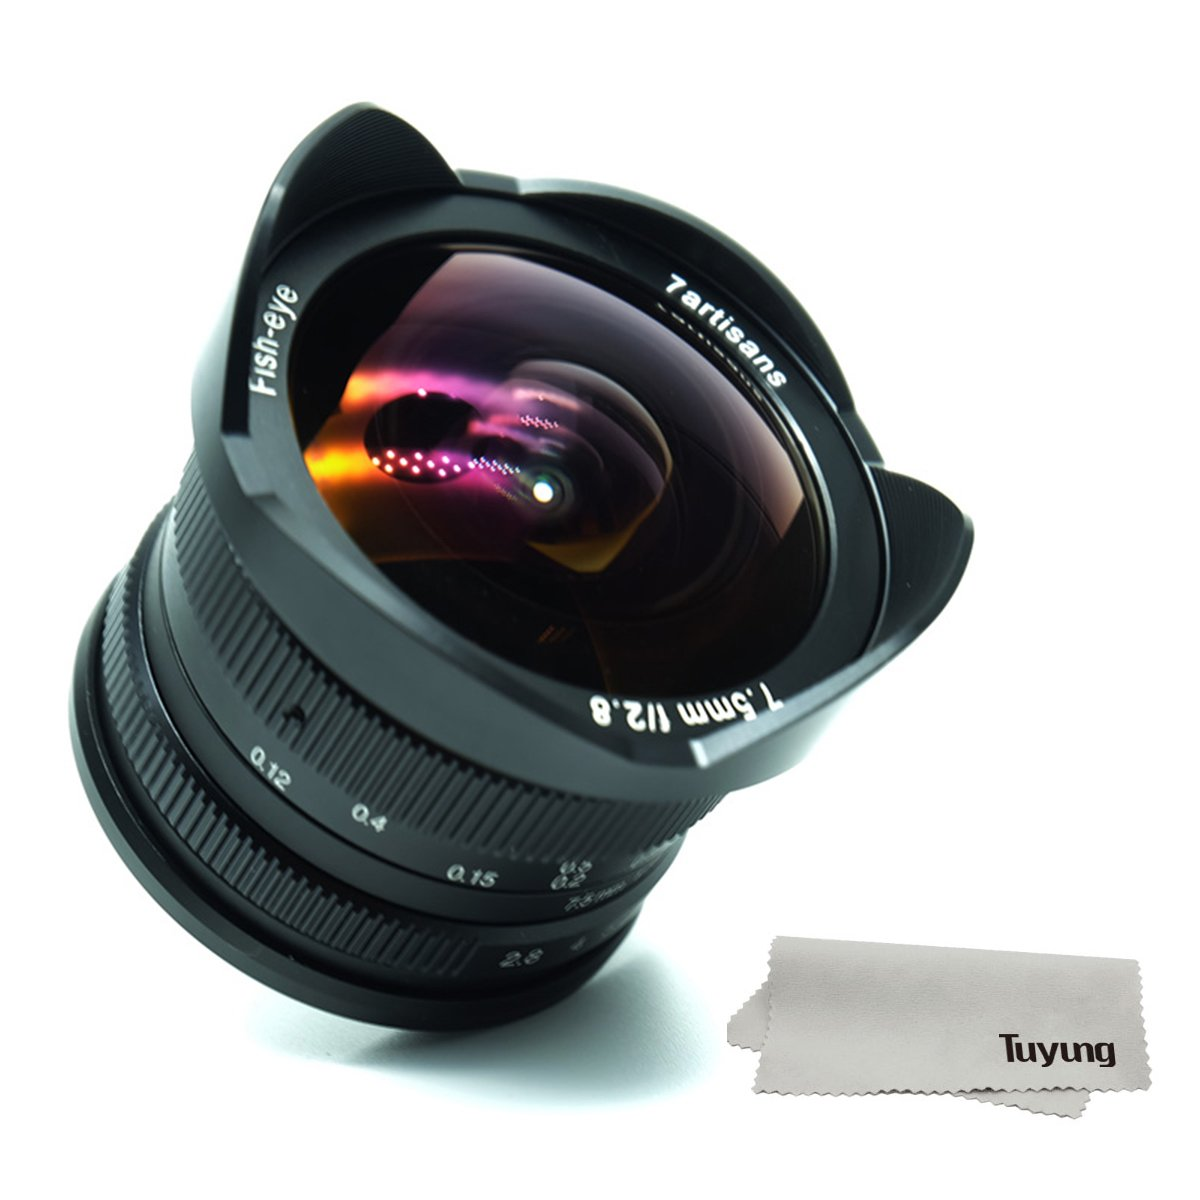 7artisans 7.5mm f2.8 APS-C Manual Fisheye Lens for Sony E Mount Cameras with Protective Lens Cap, Removable Lens Hood - Black by 7artisans